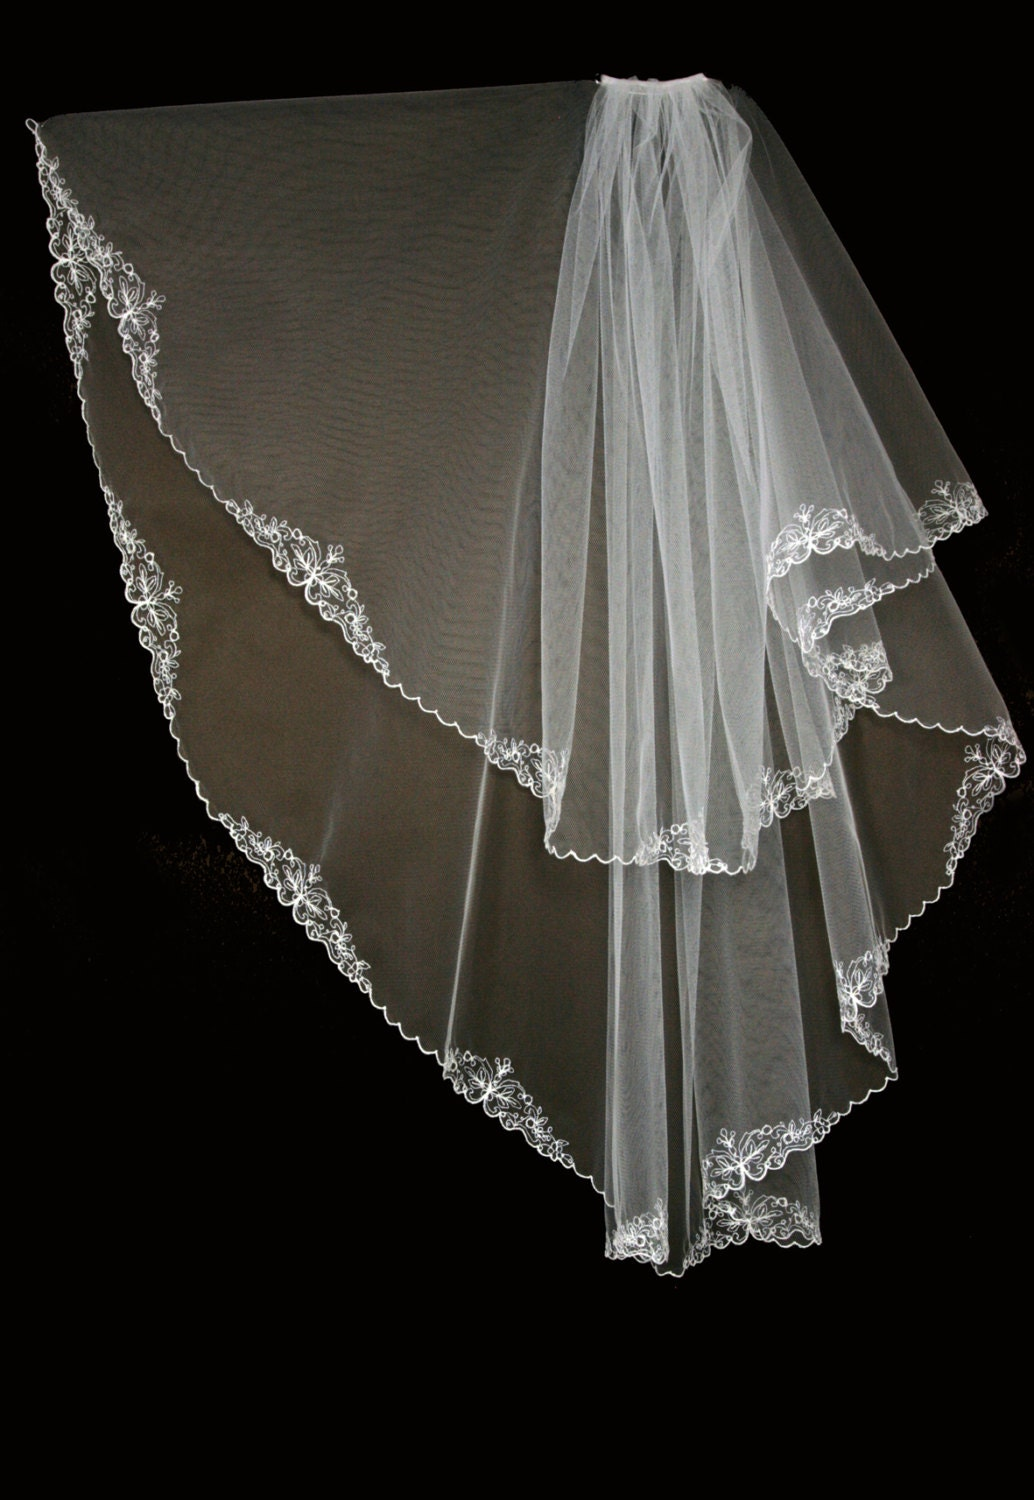 Bridal veil sloane wedding with embroidery by